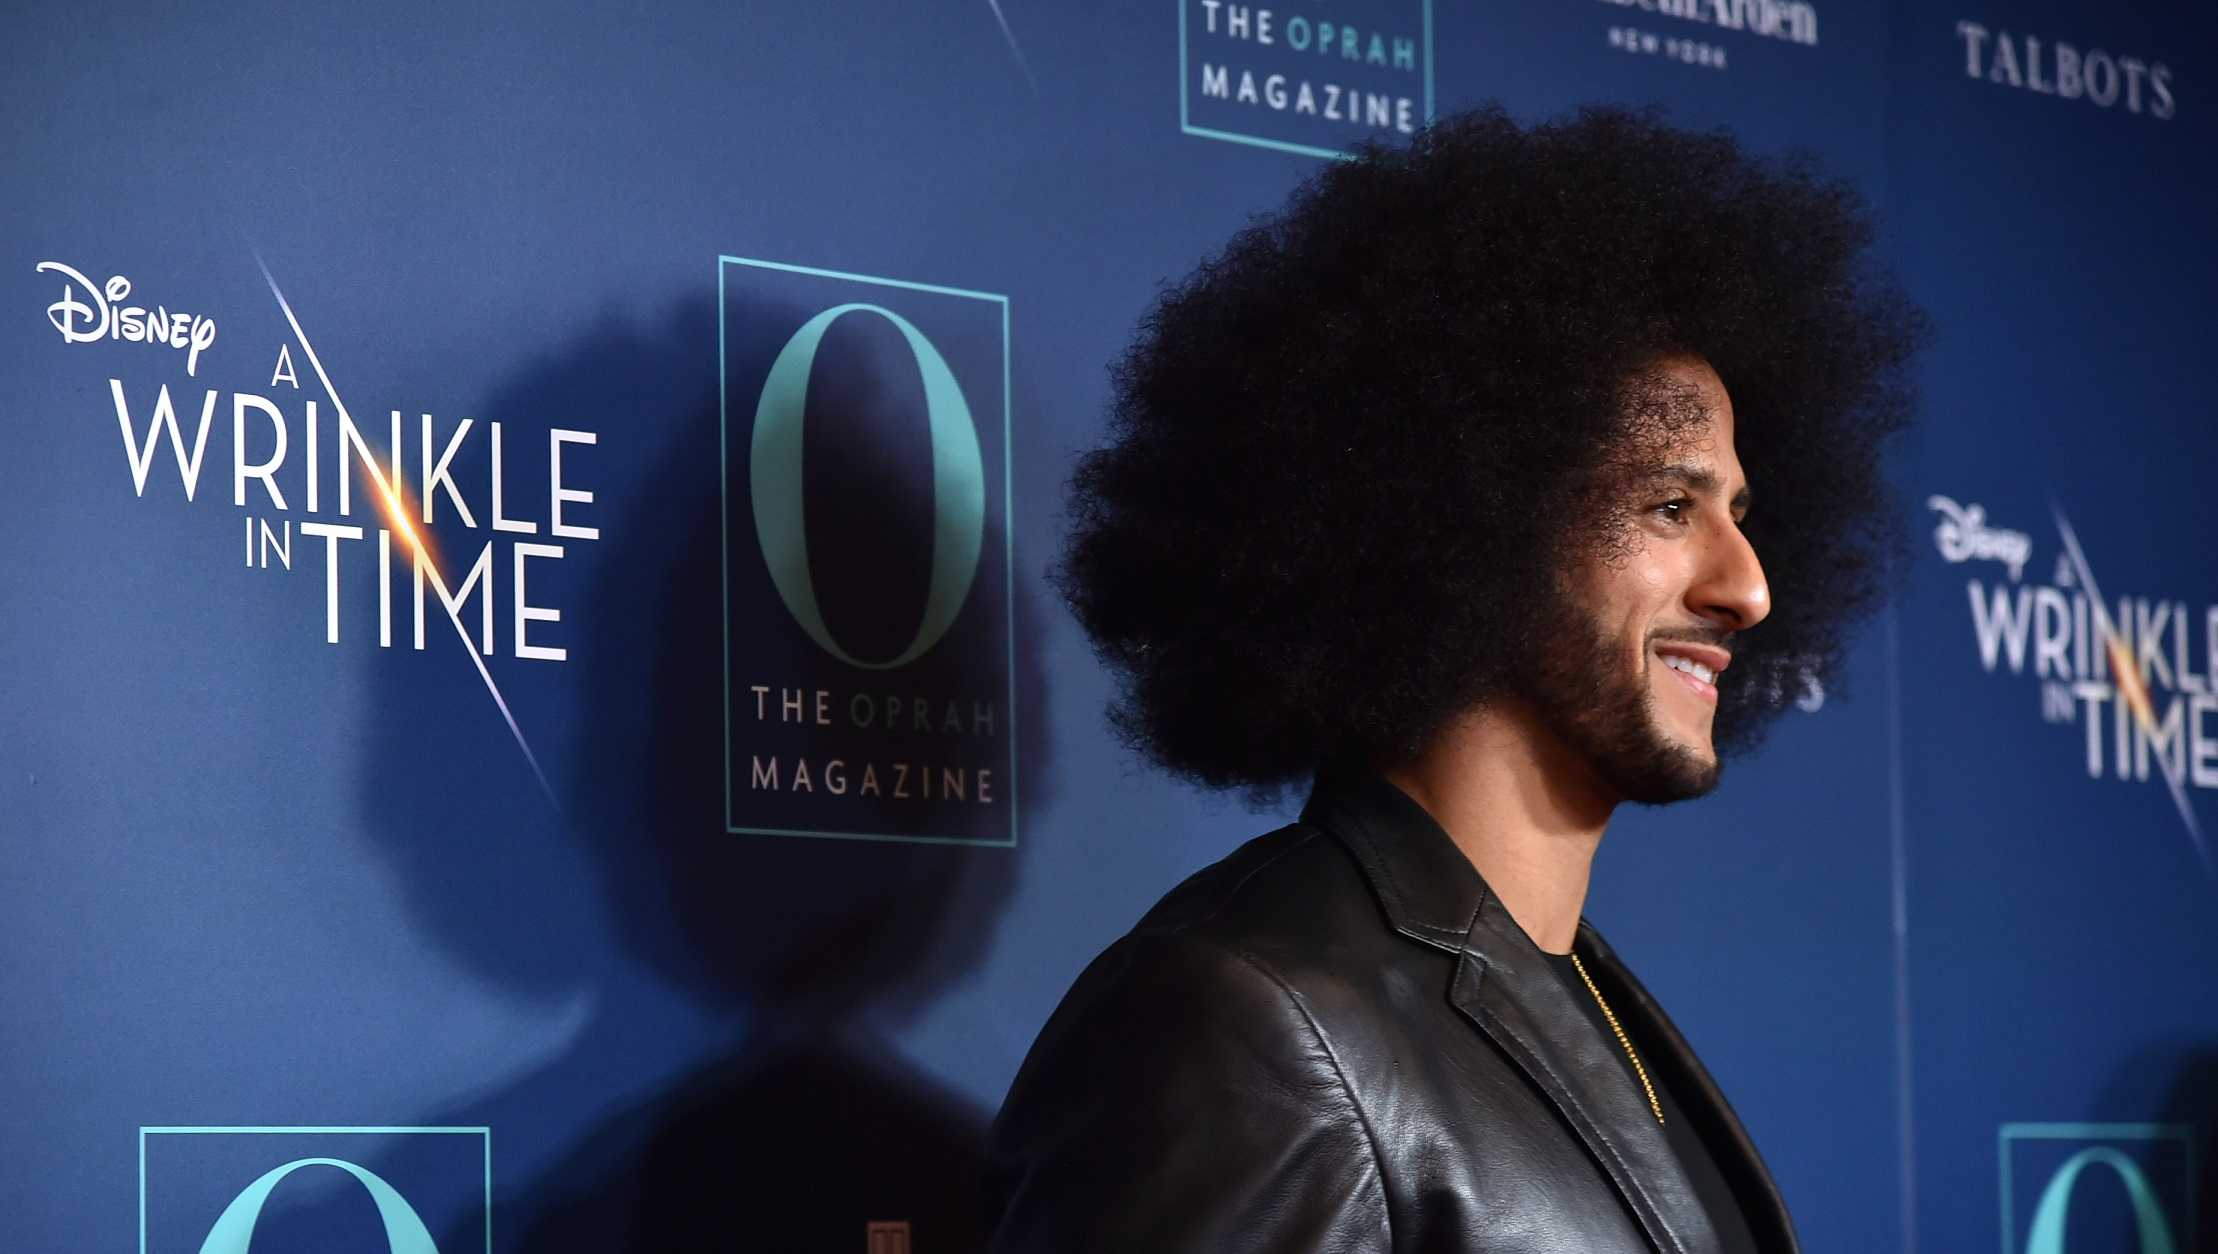 Colin Kaepernick attends an NYC screening of 'A Wrinkle In Time' at Walter Reade Theater on March 7, 2018 in New York City.